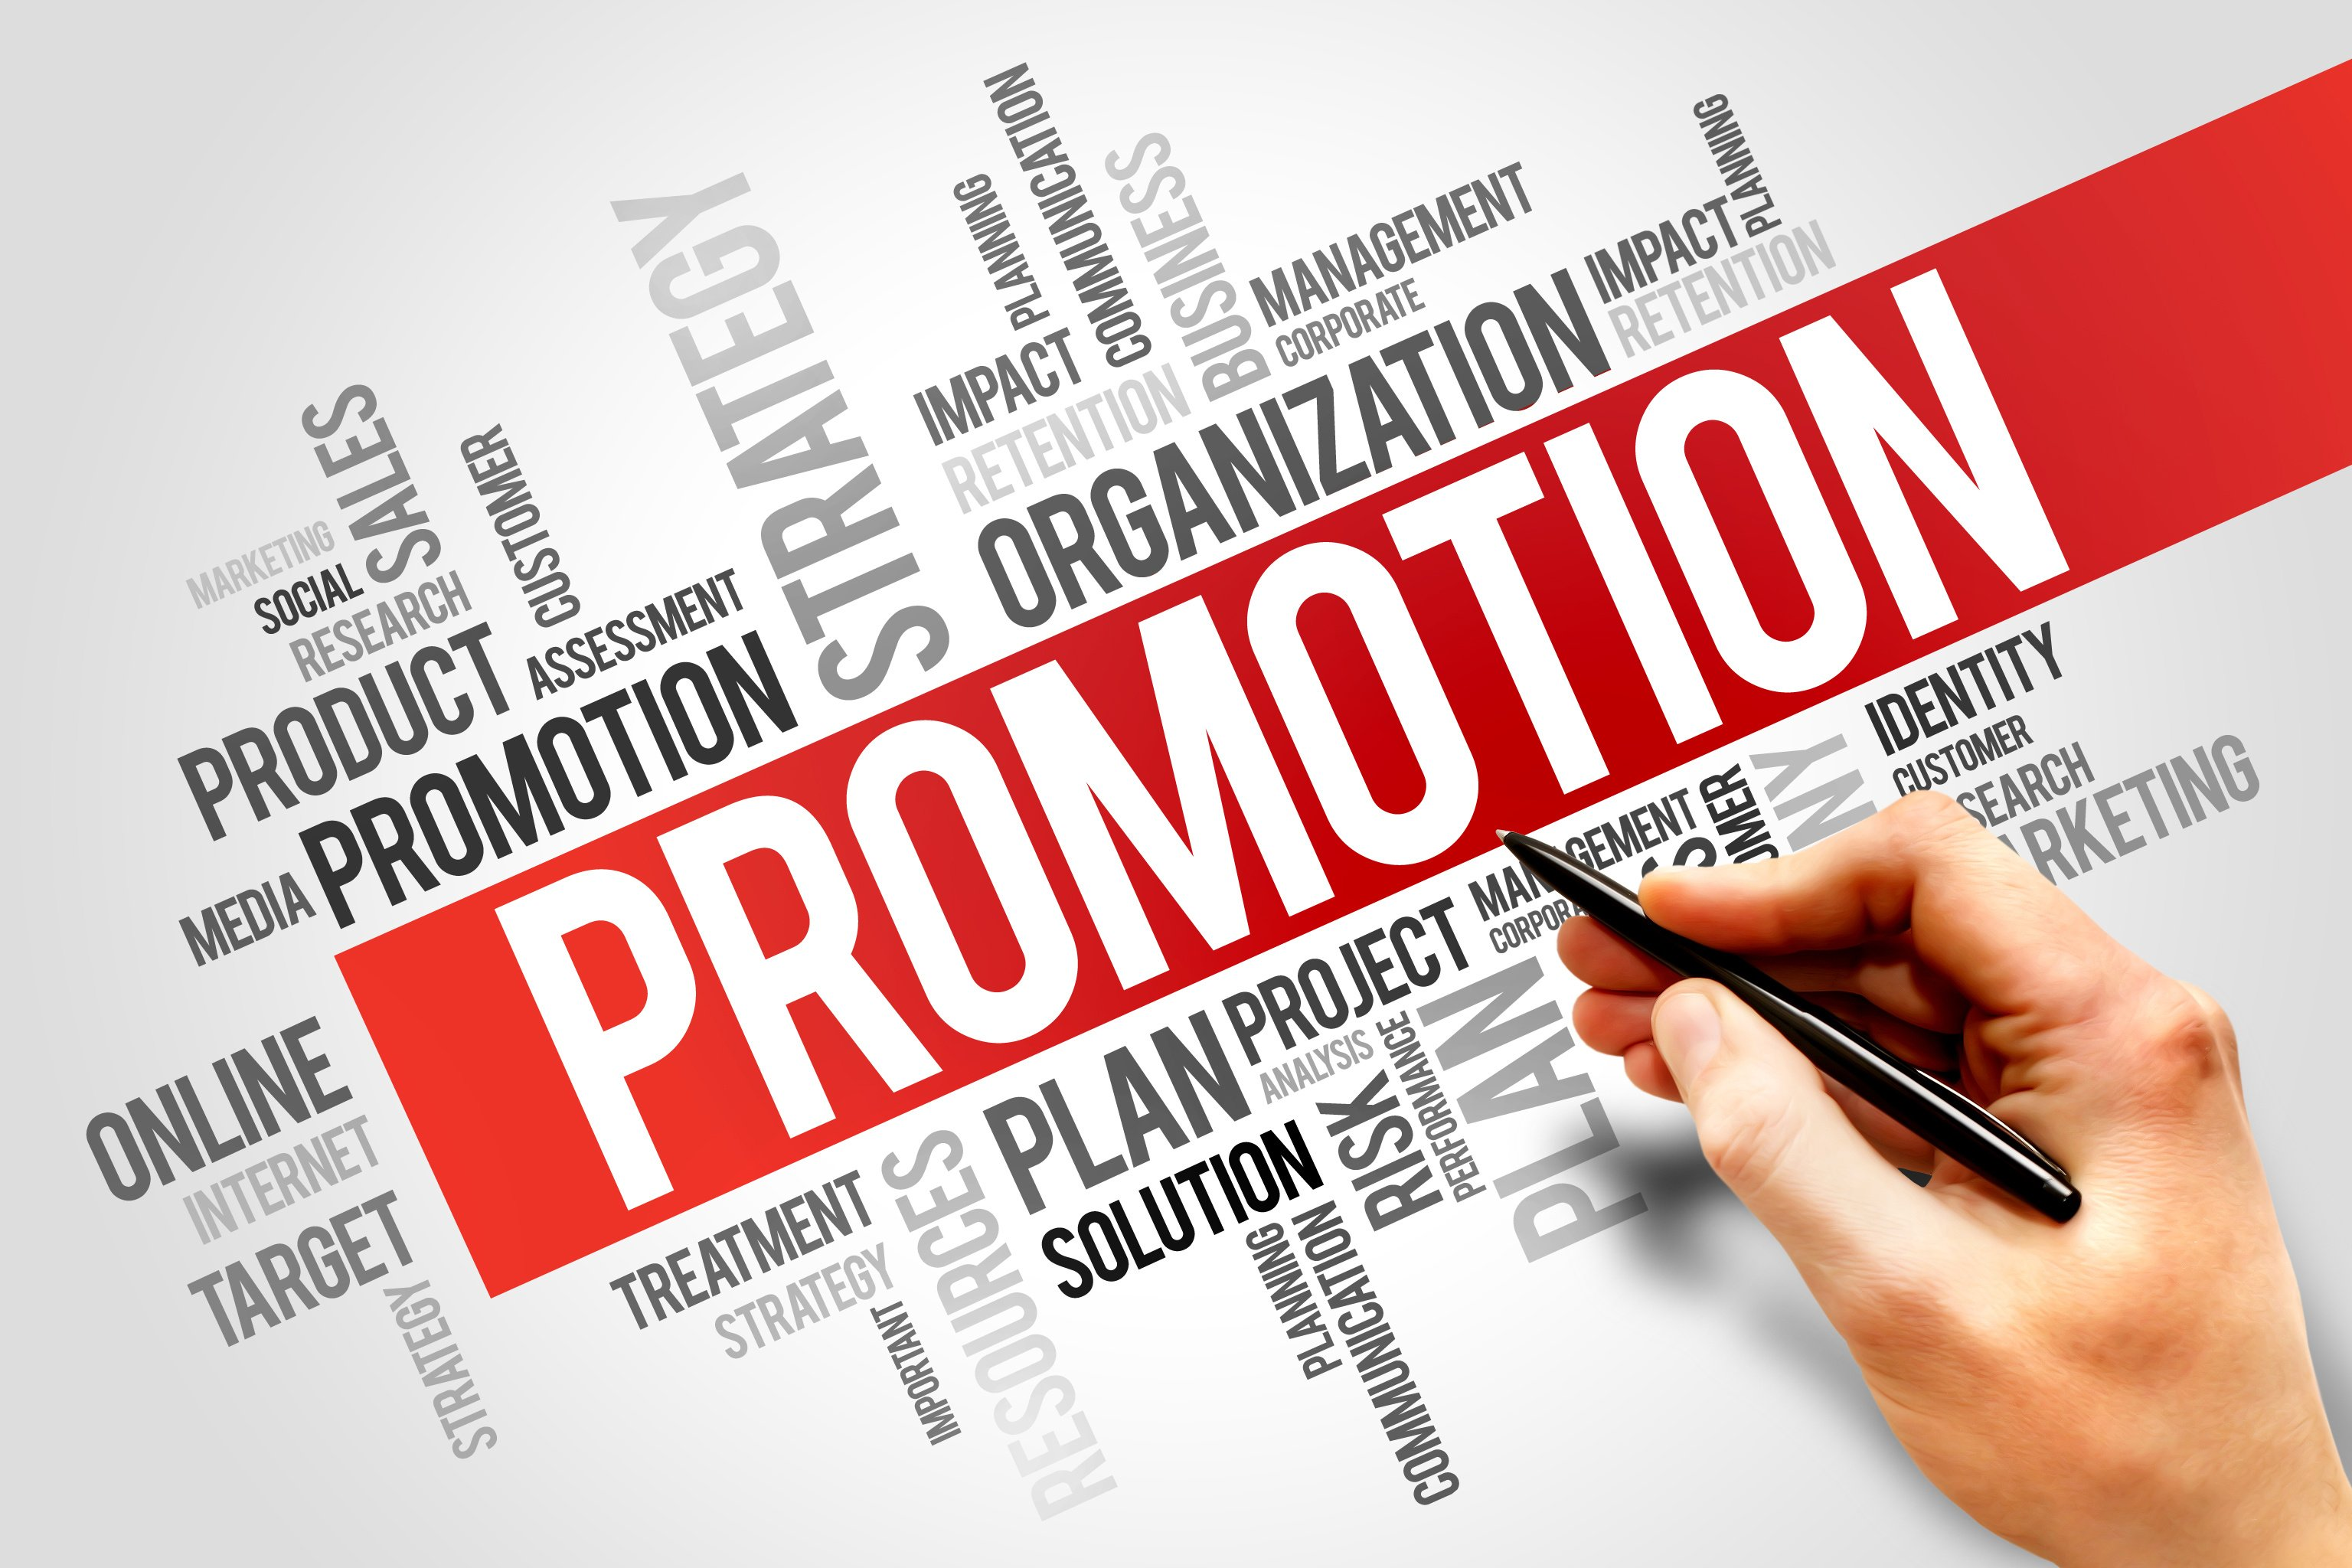 Promotional Companies Give Gifts To Customers